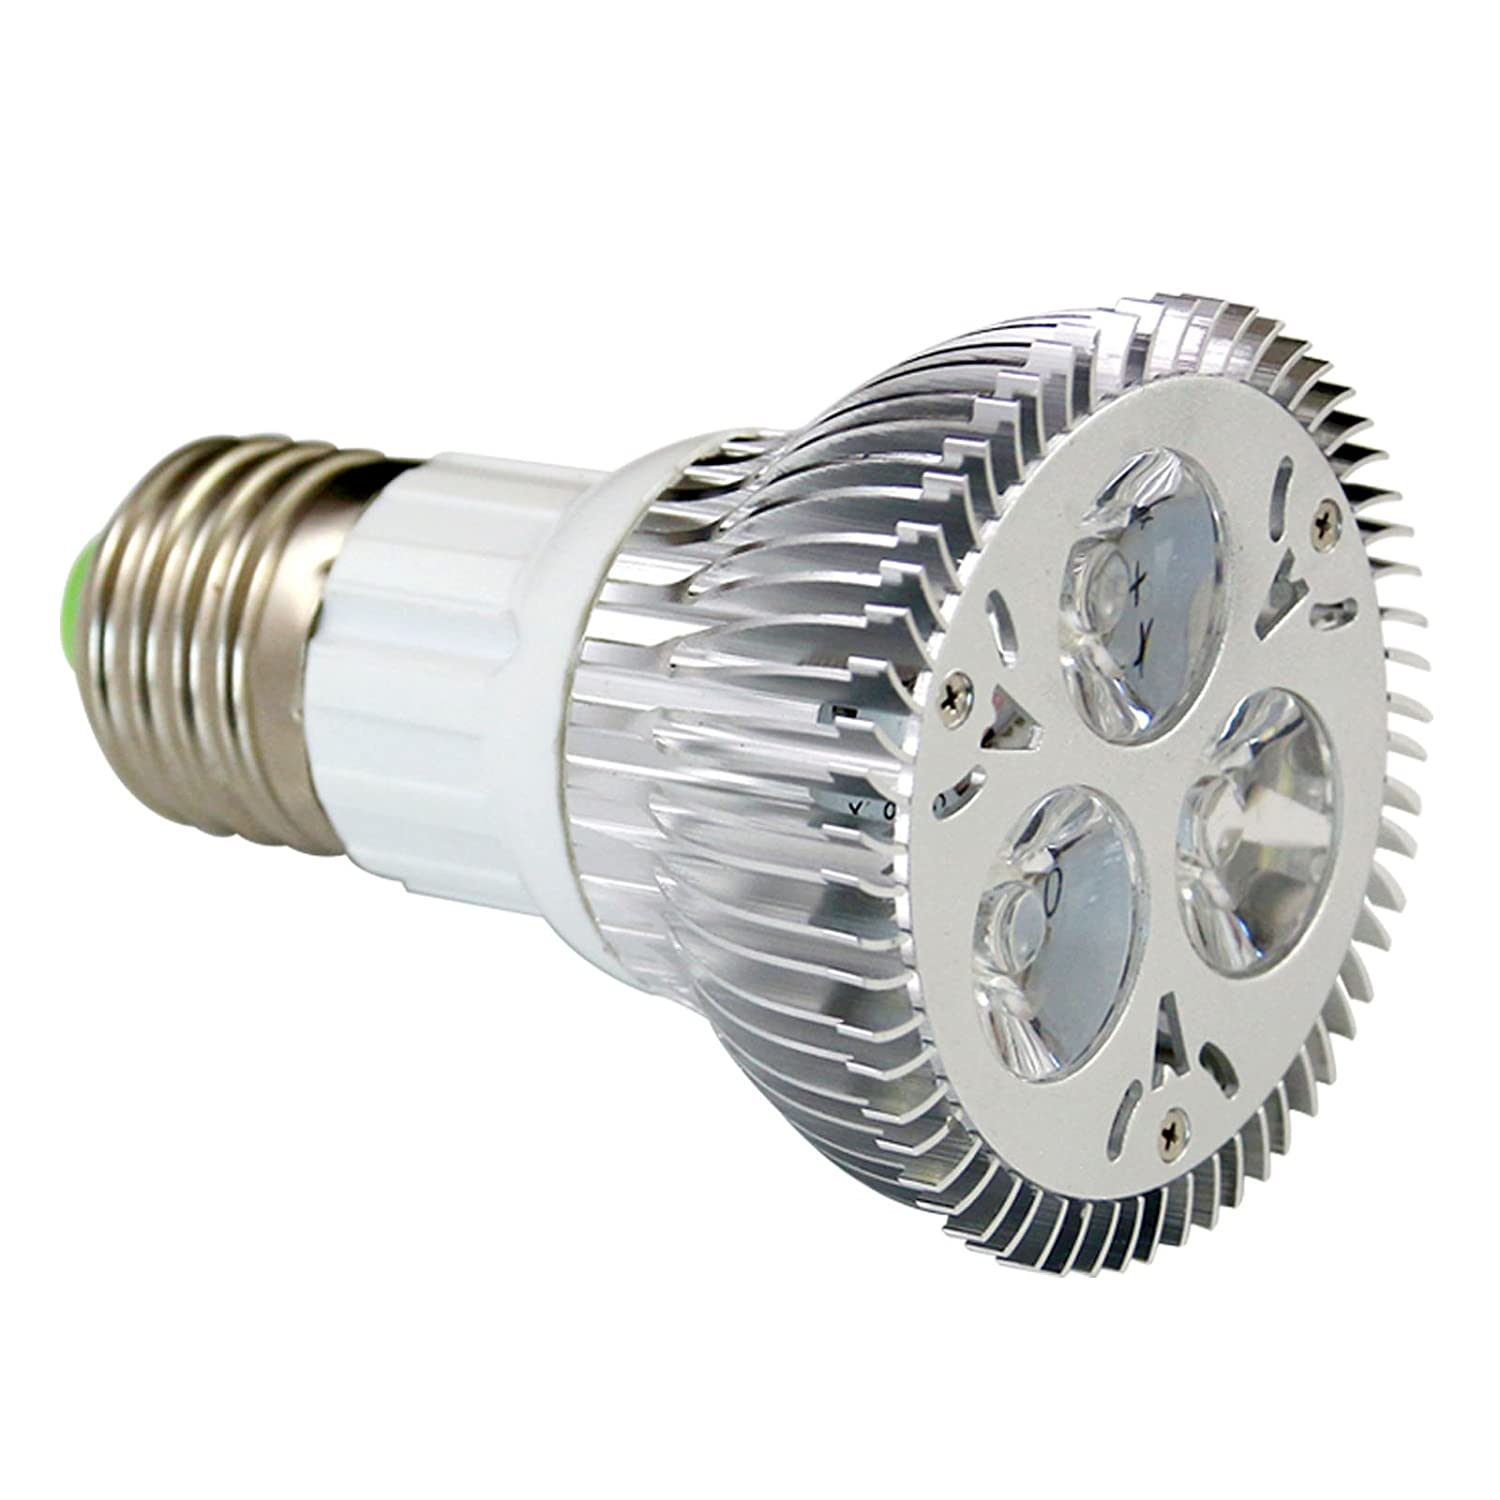 Low cost dimmable led recessed light bulb bright led par20 spotlight bulb 9w led flood light Led light bulb cost